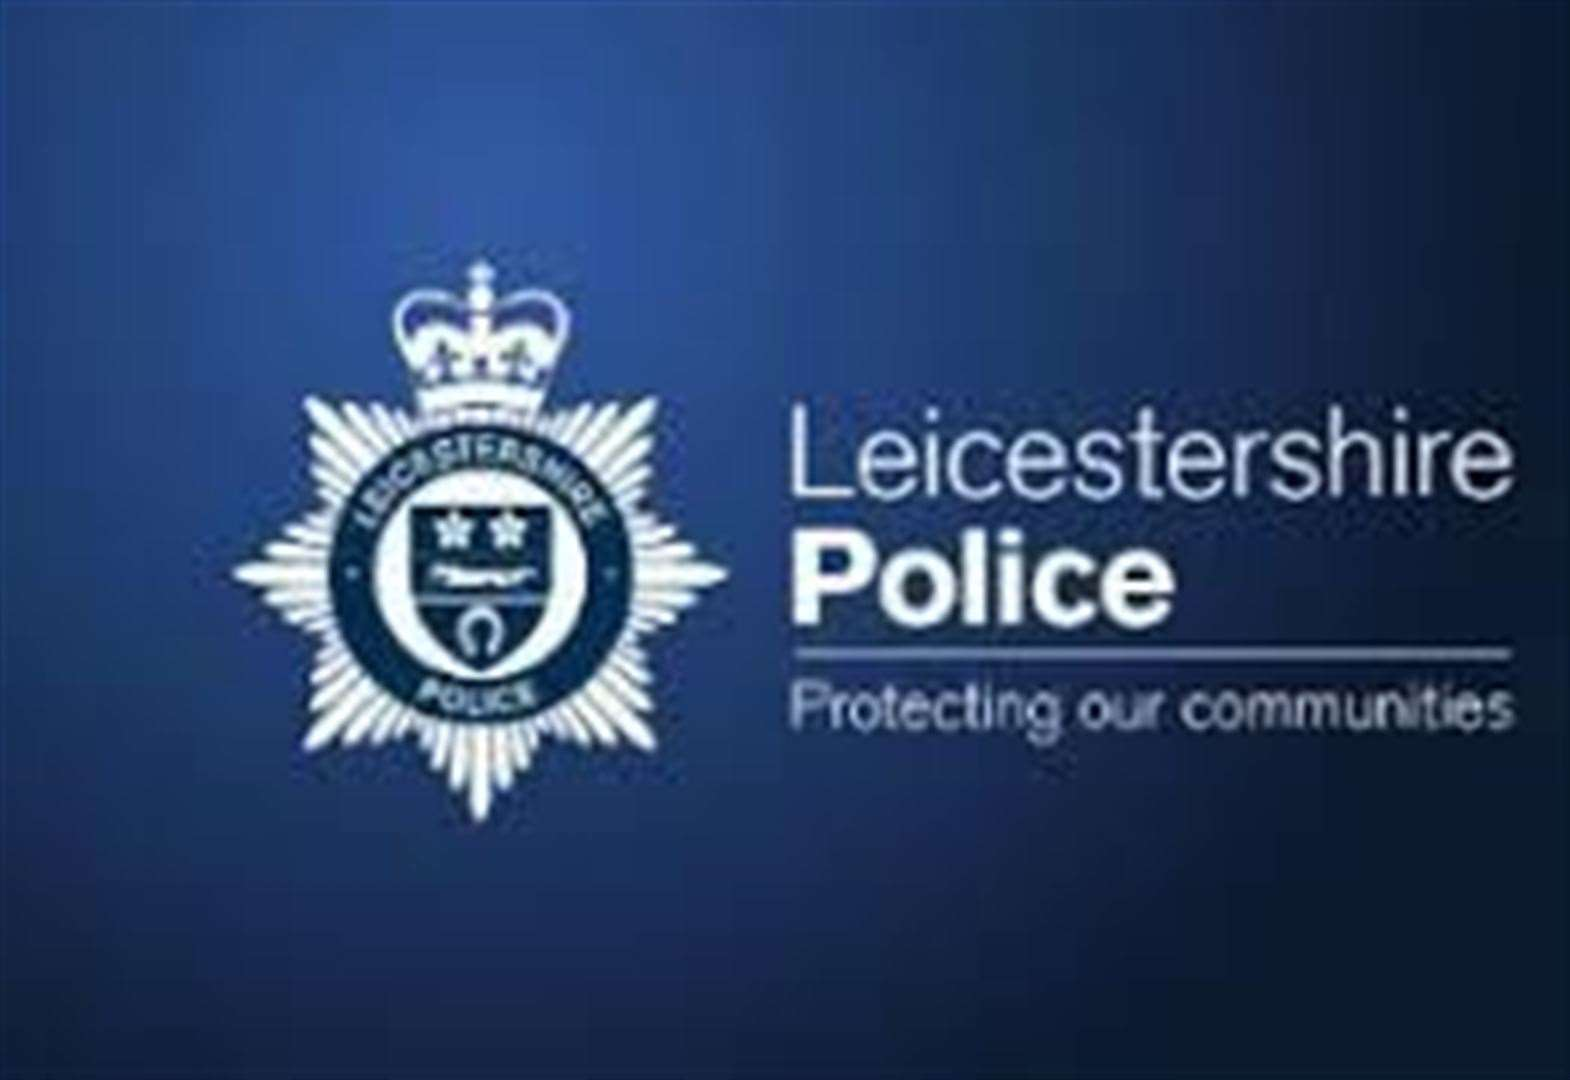 Leicestershire Police (13359134)